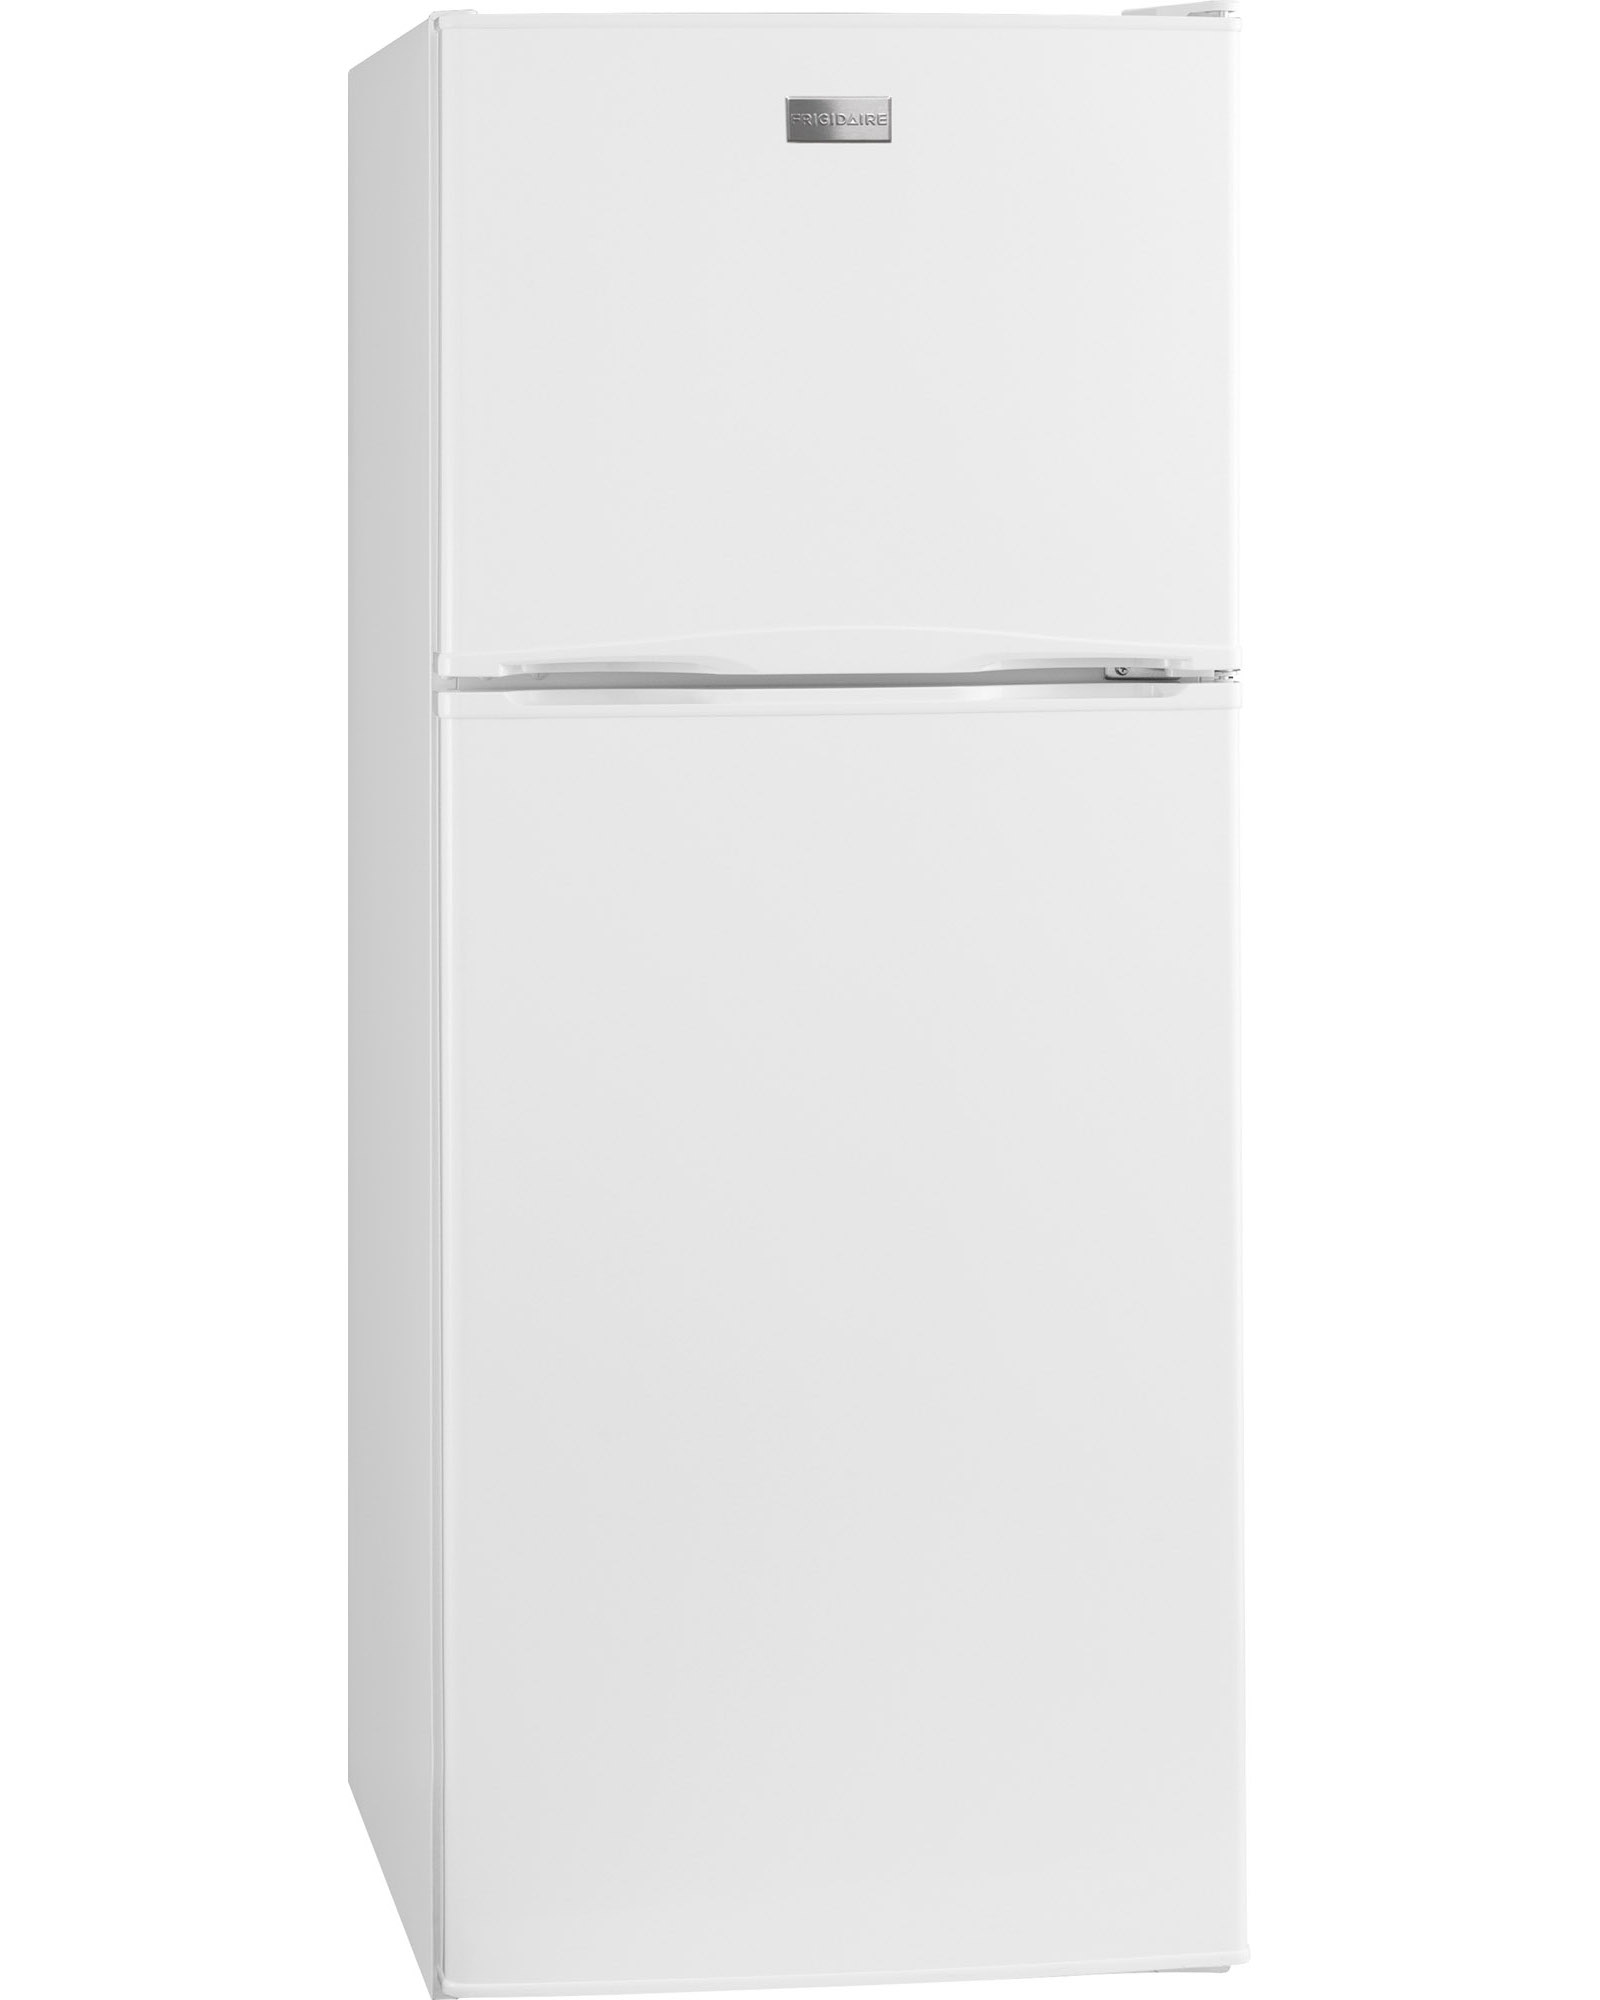 Frigidaire FFET1022QW 10 cu. ft. Top Freezer Refrigerator - White